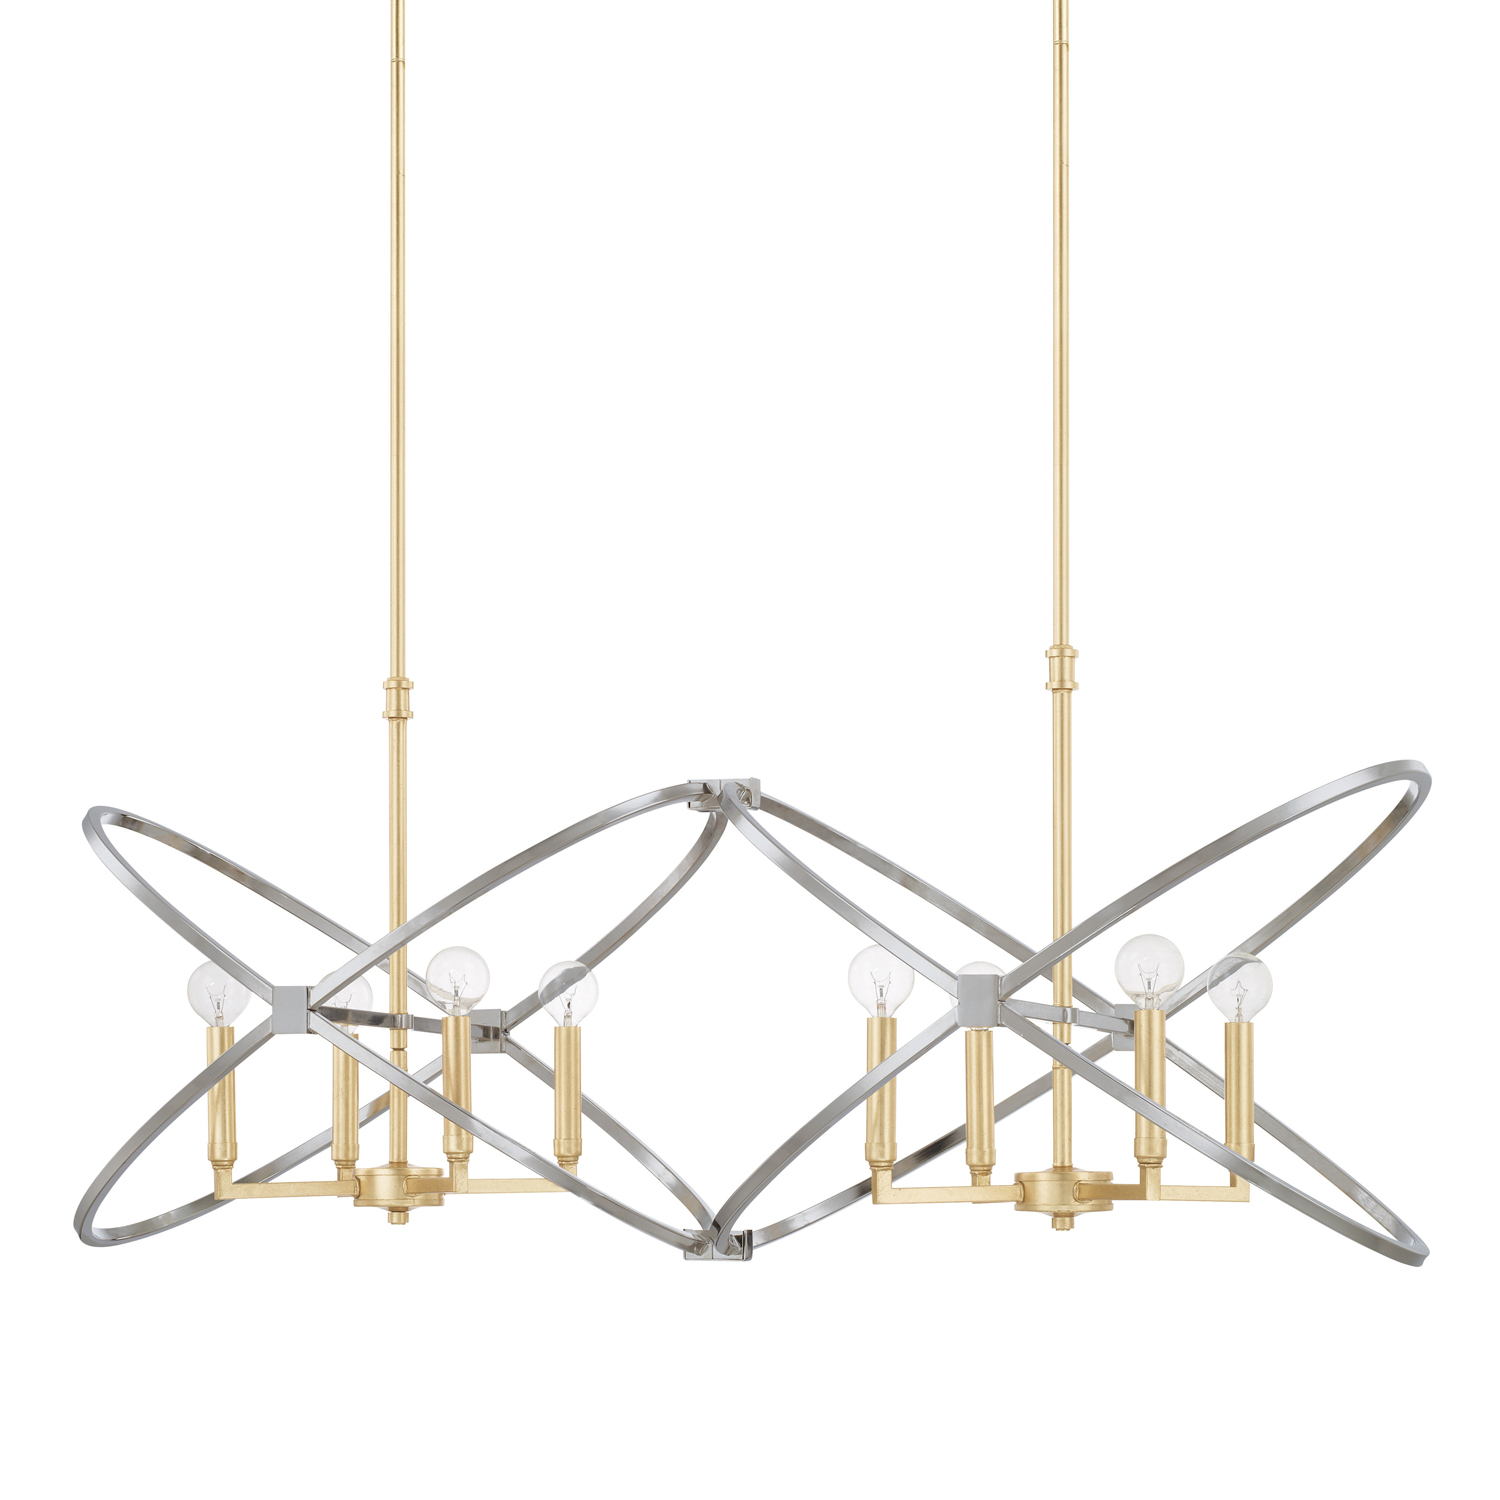 Eight Light Island Chandelier from the Fire and Ice collection by Capital Lighting 820881FI